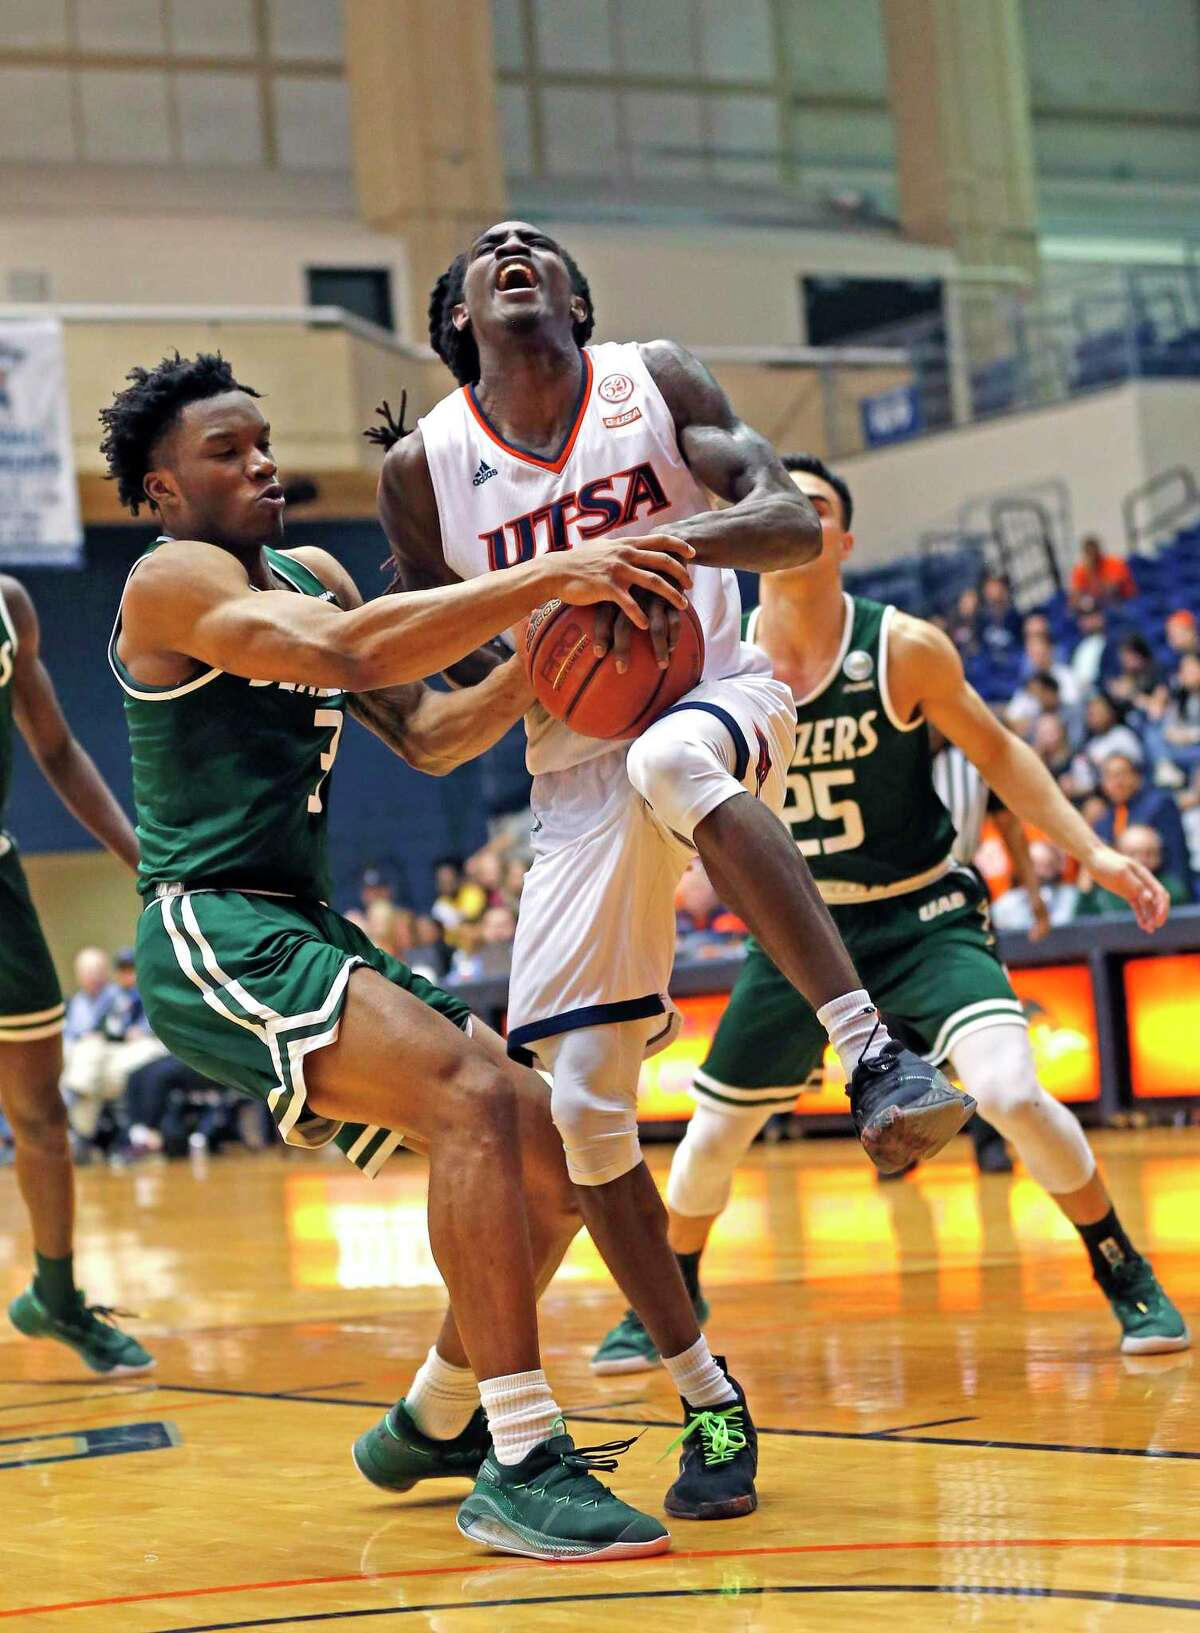 UTSA's Keaton Wallace, center, averaged 18.5 points per game and was a second-team pick in Conference USA, but he has struggled this season to match his output from last season. He averaged 20.2 points in 2018-19.